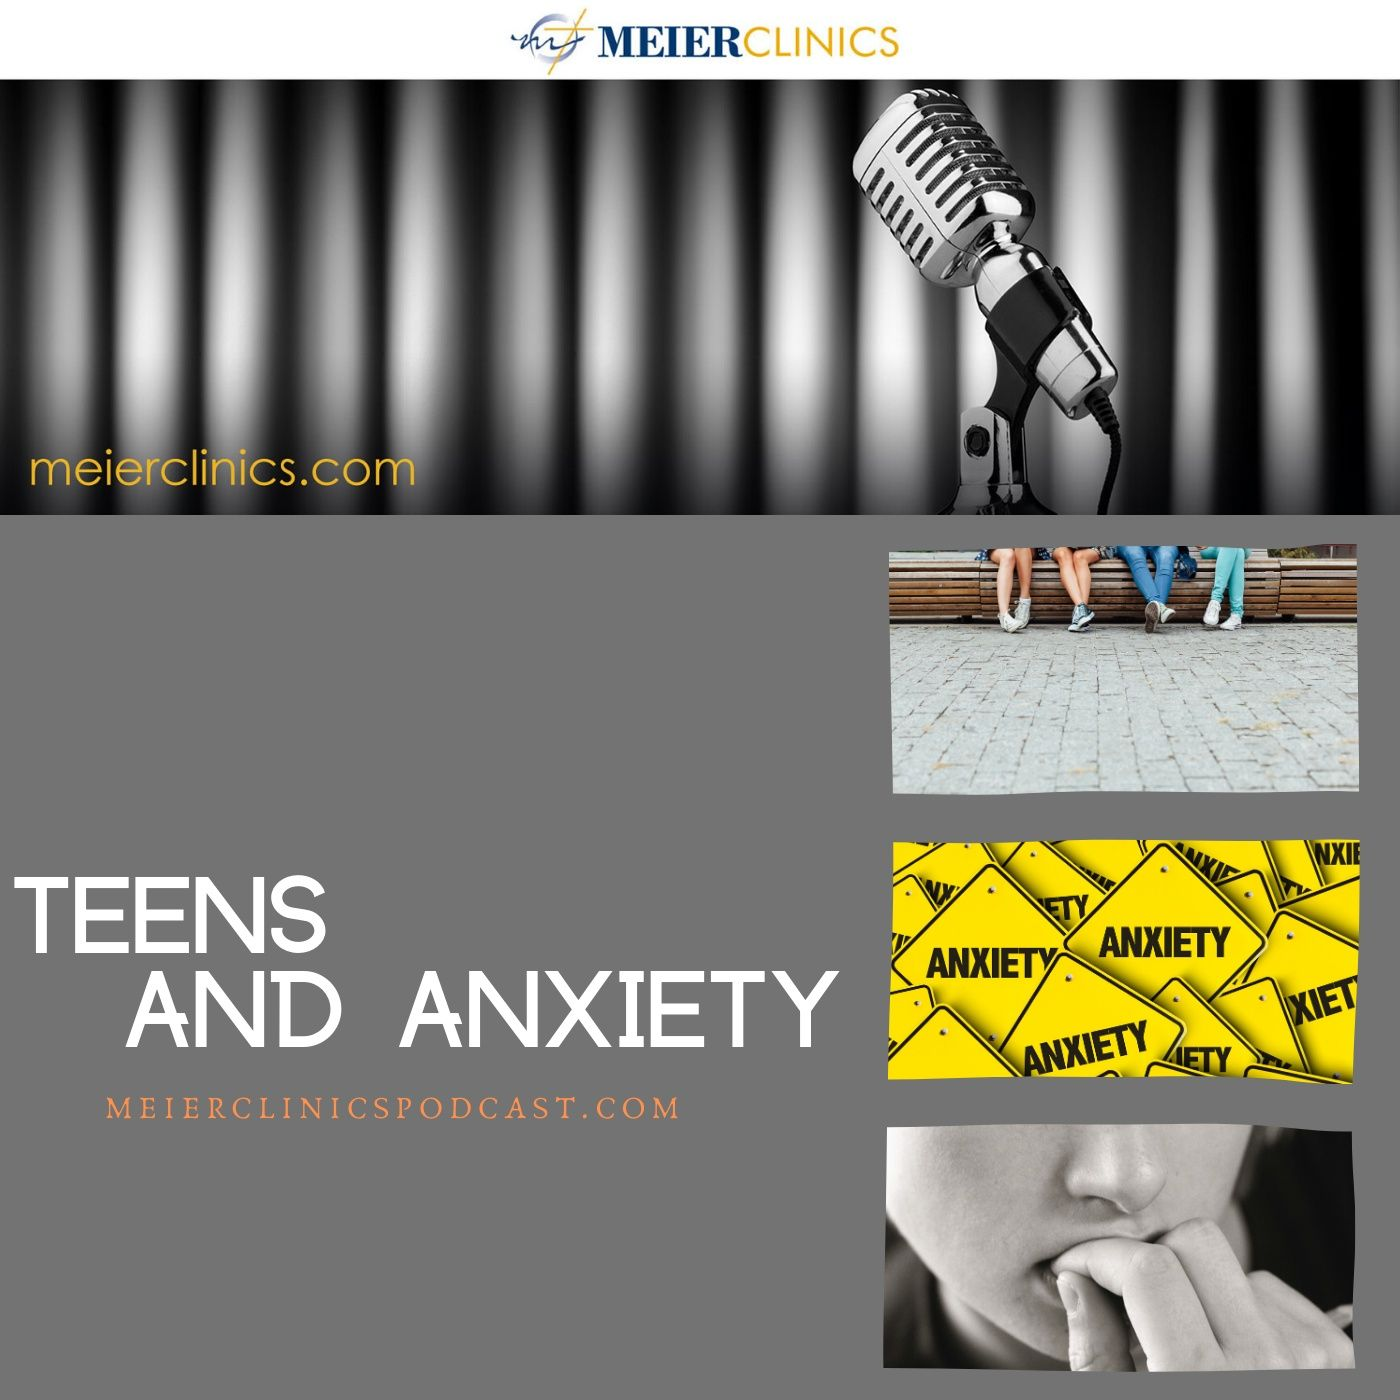 Teens and Anxiety